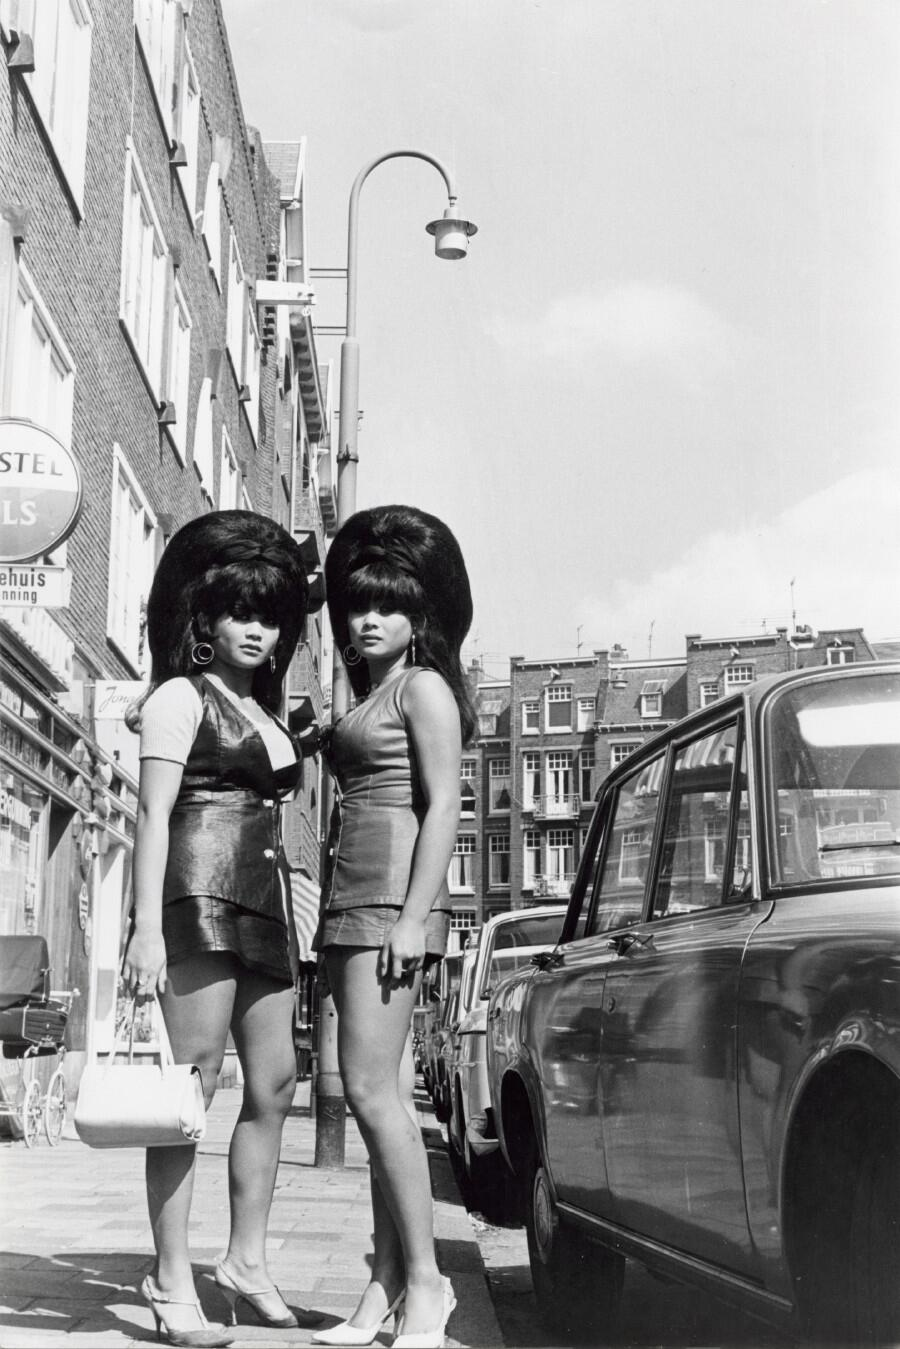 Fashion 1940s Two Female Models Flirty 40s Style Evening: Vintage Everyday: Amsterdam In The 1960s